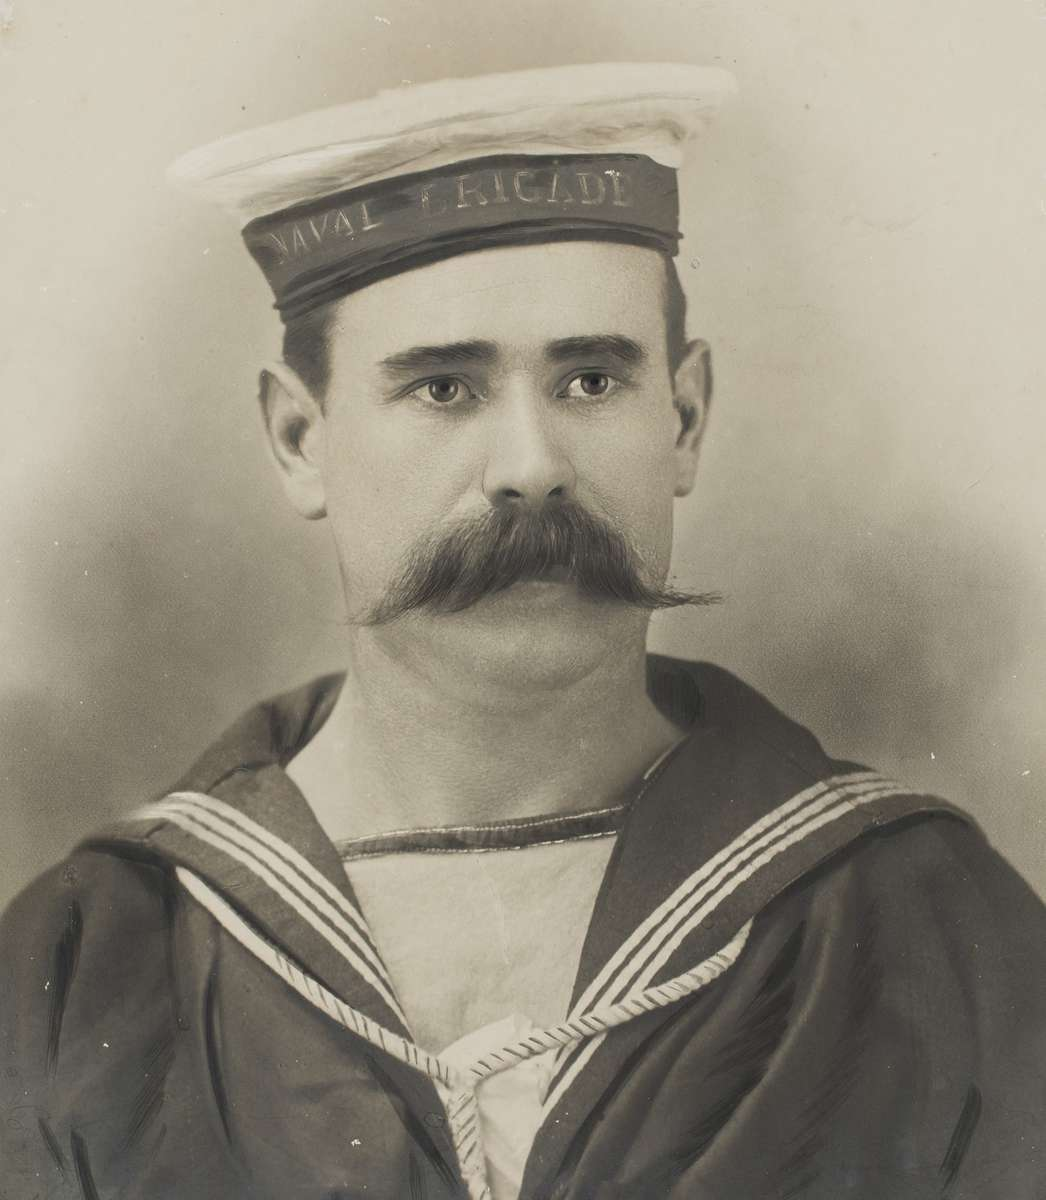 Able Seaman Thomas Fleming Walker in the uniform of the New South Wales Naval Brigade circa 1900. ANMM Collection 00054875. Gift from John Walker.